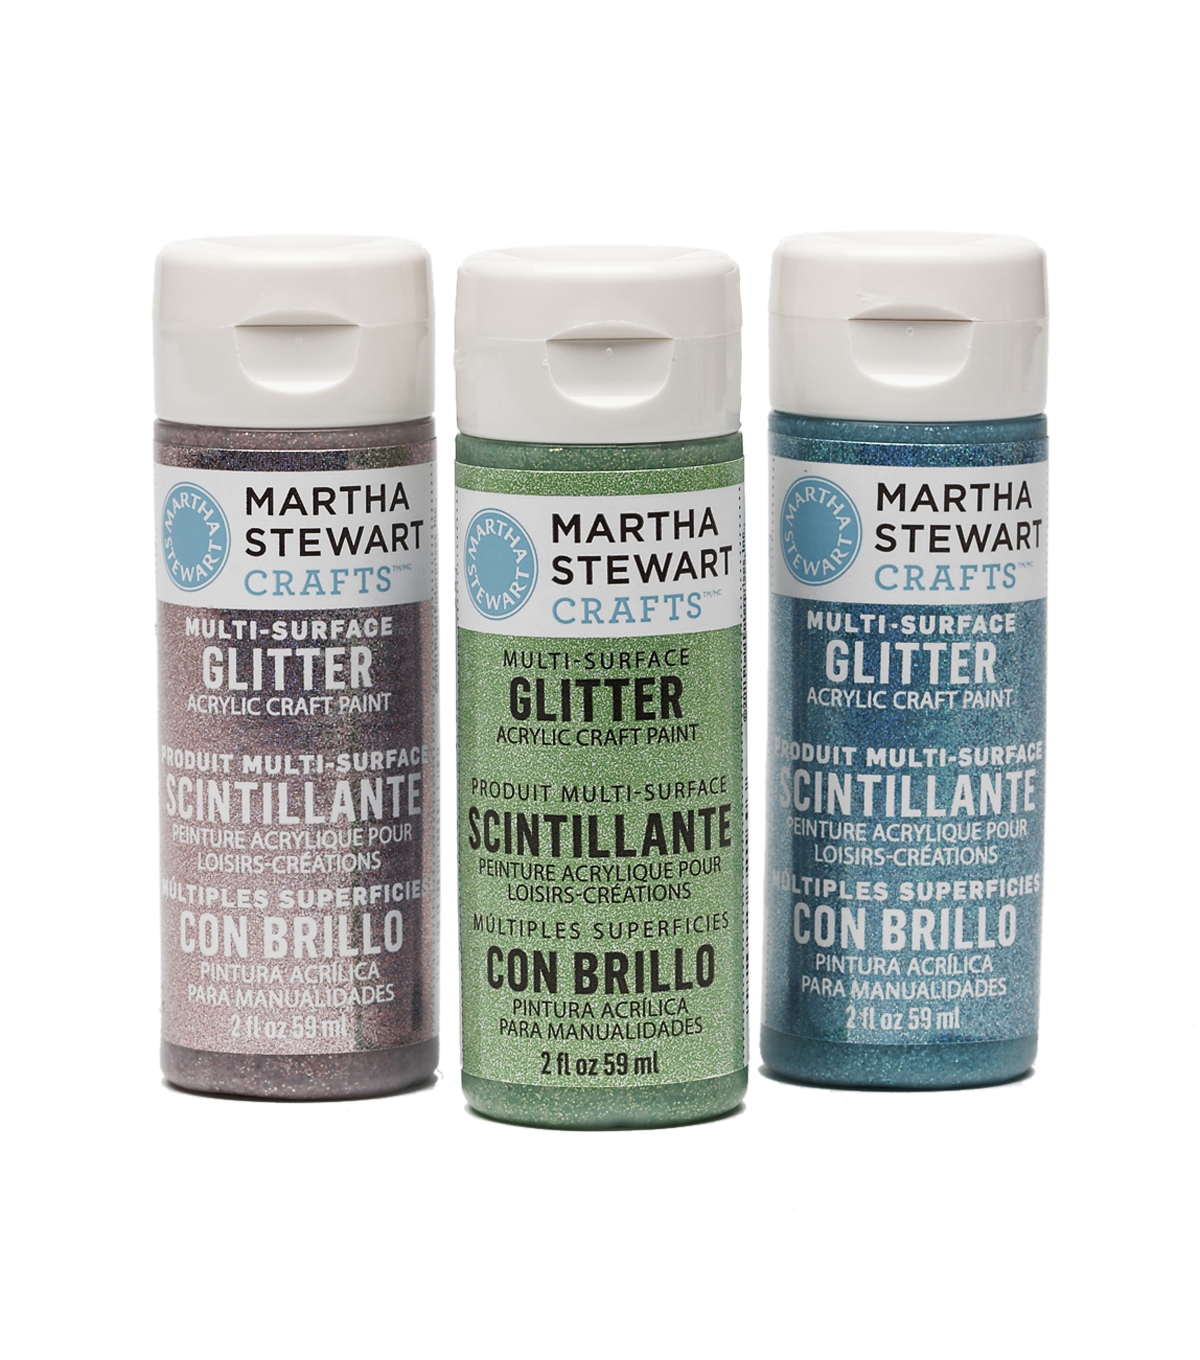 Martha Stewart 2oz Multi-Surface Glitter Acrylic Craft Paint